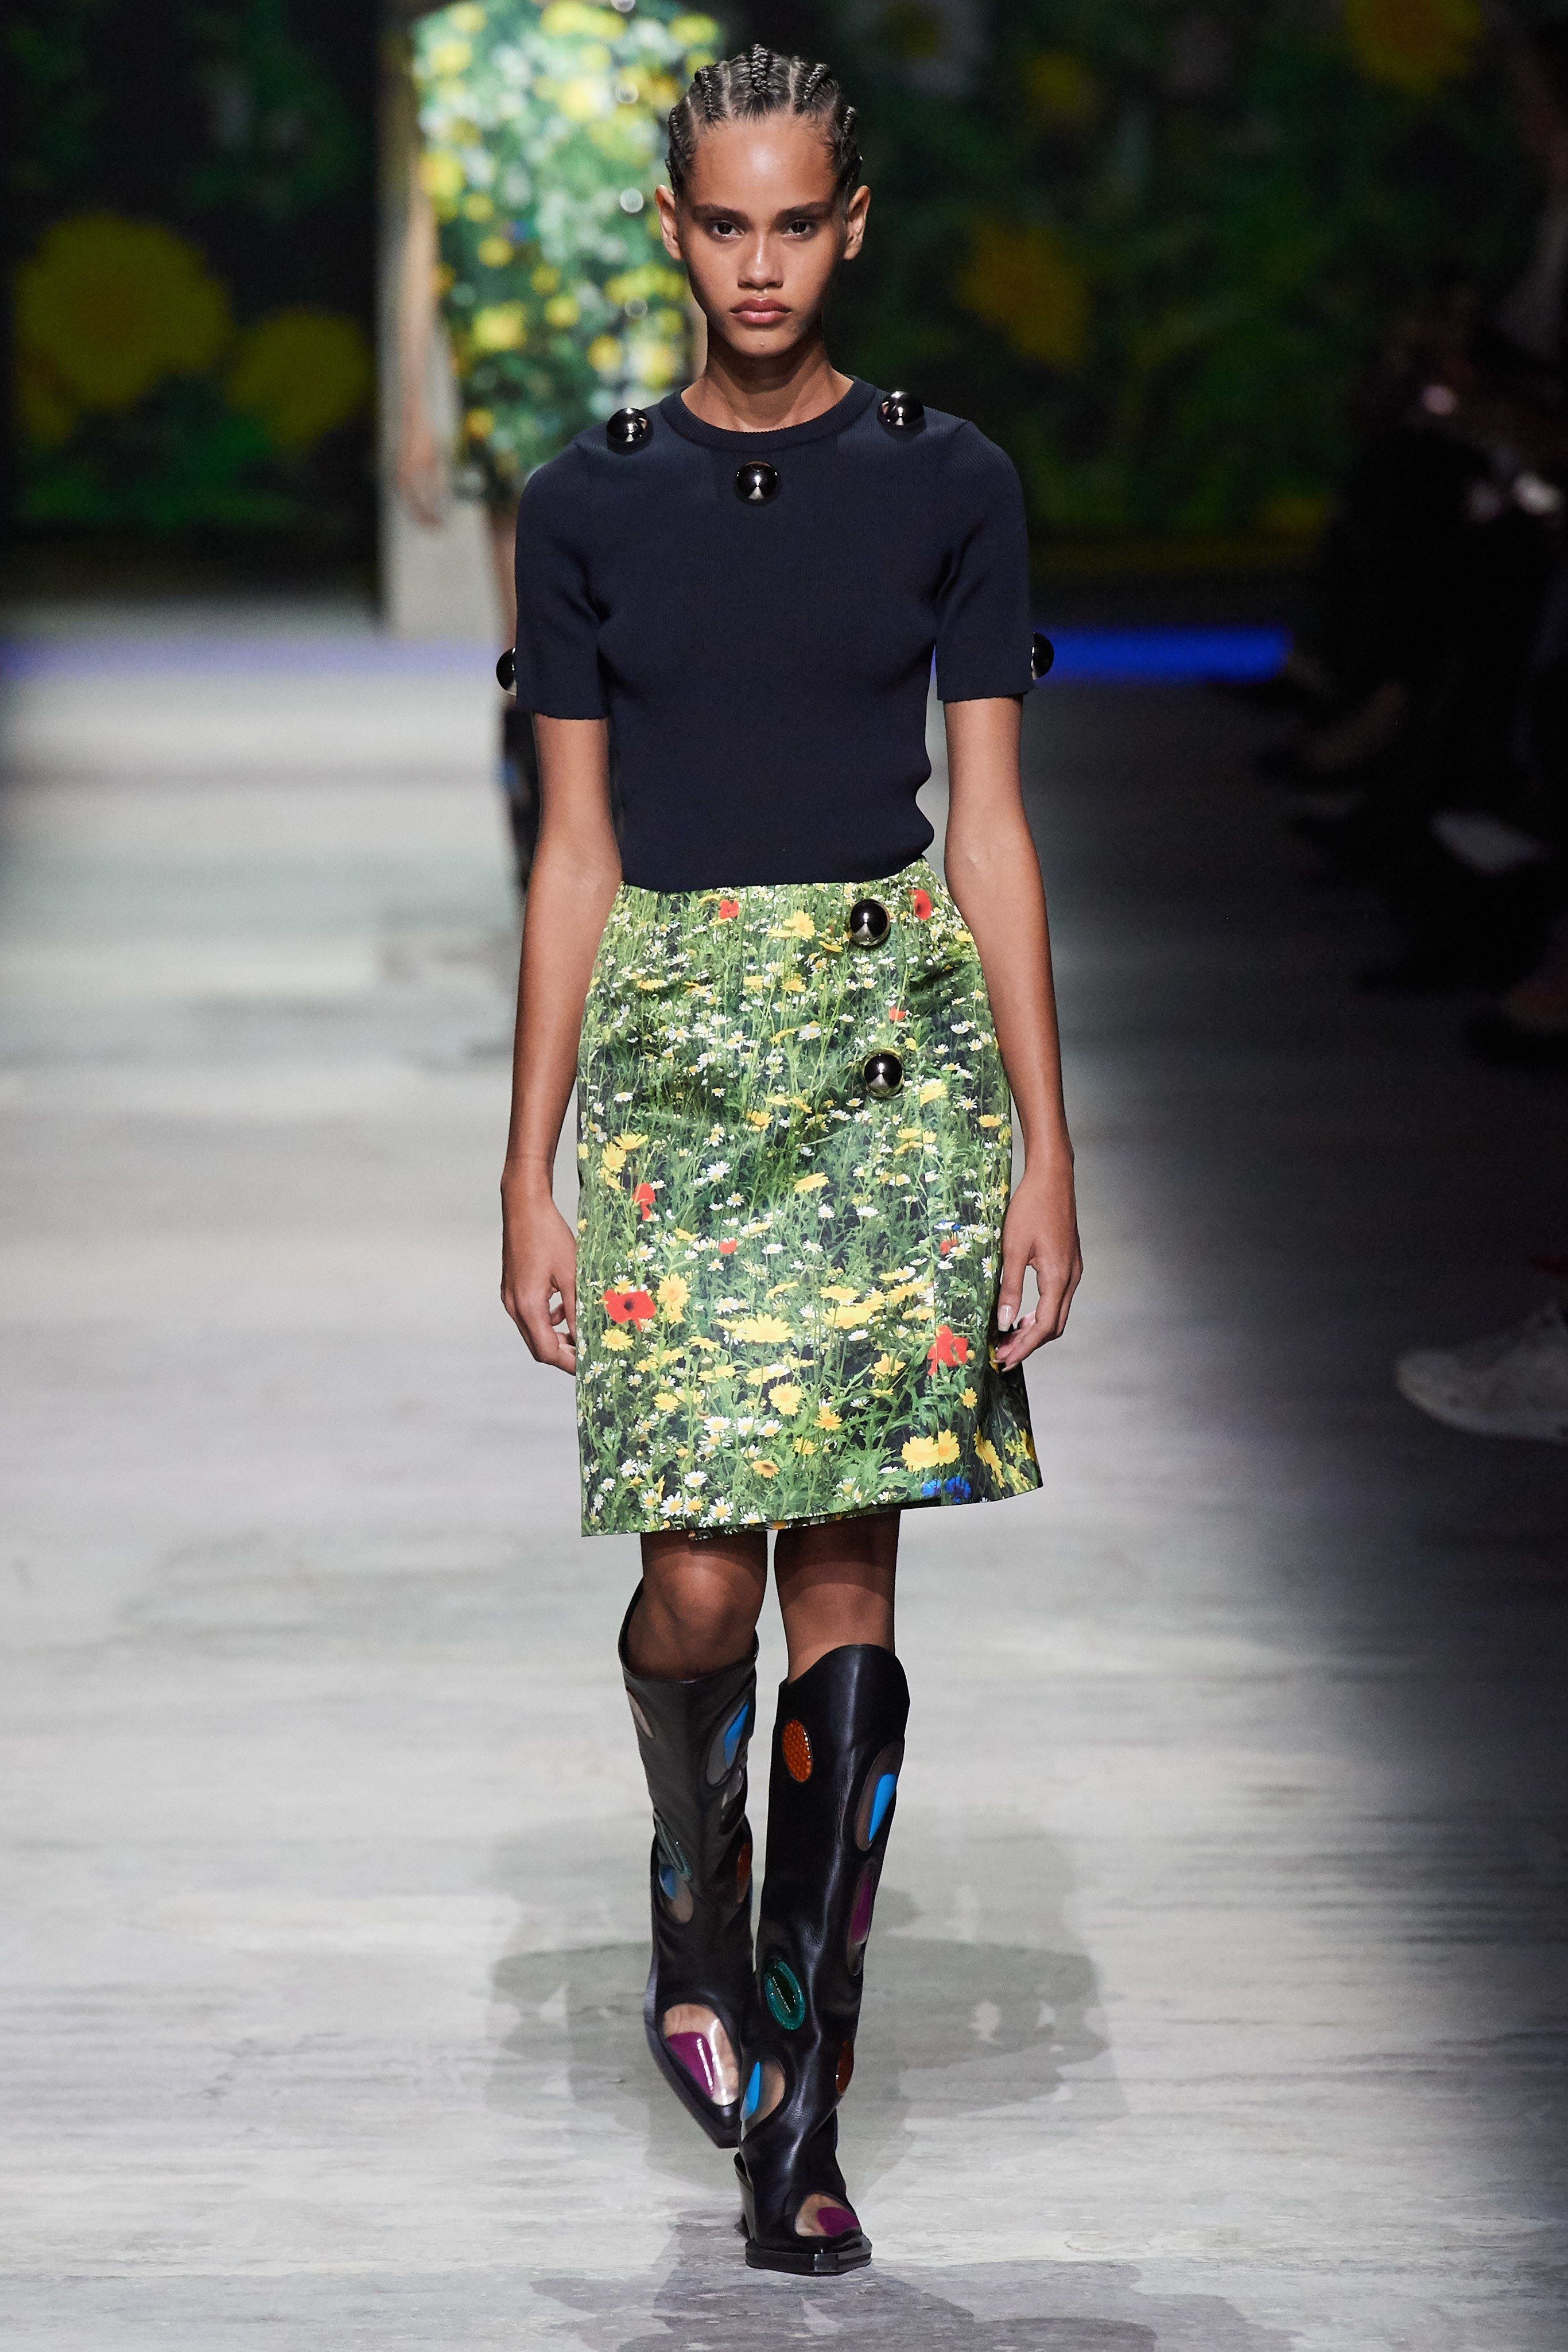 CHRISTOPHER KANE FALL WINTER 2015-16 WOMENS COLLECTION